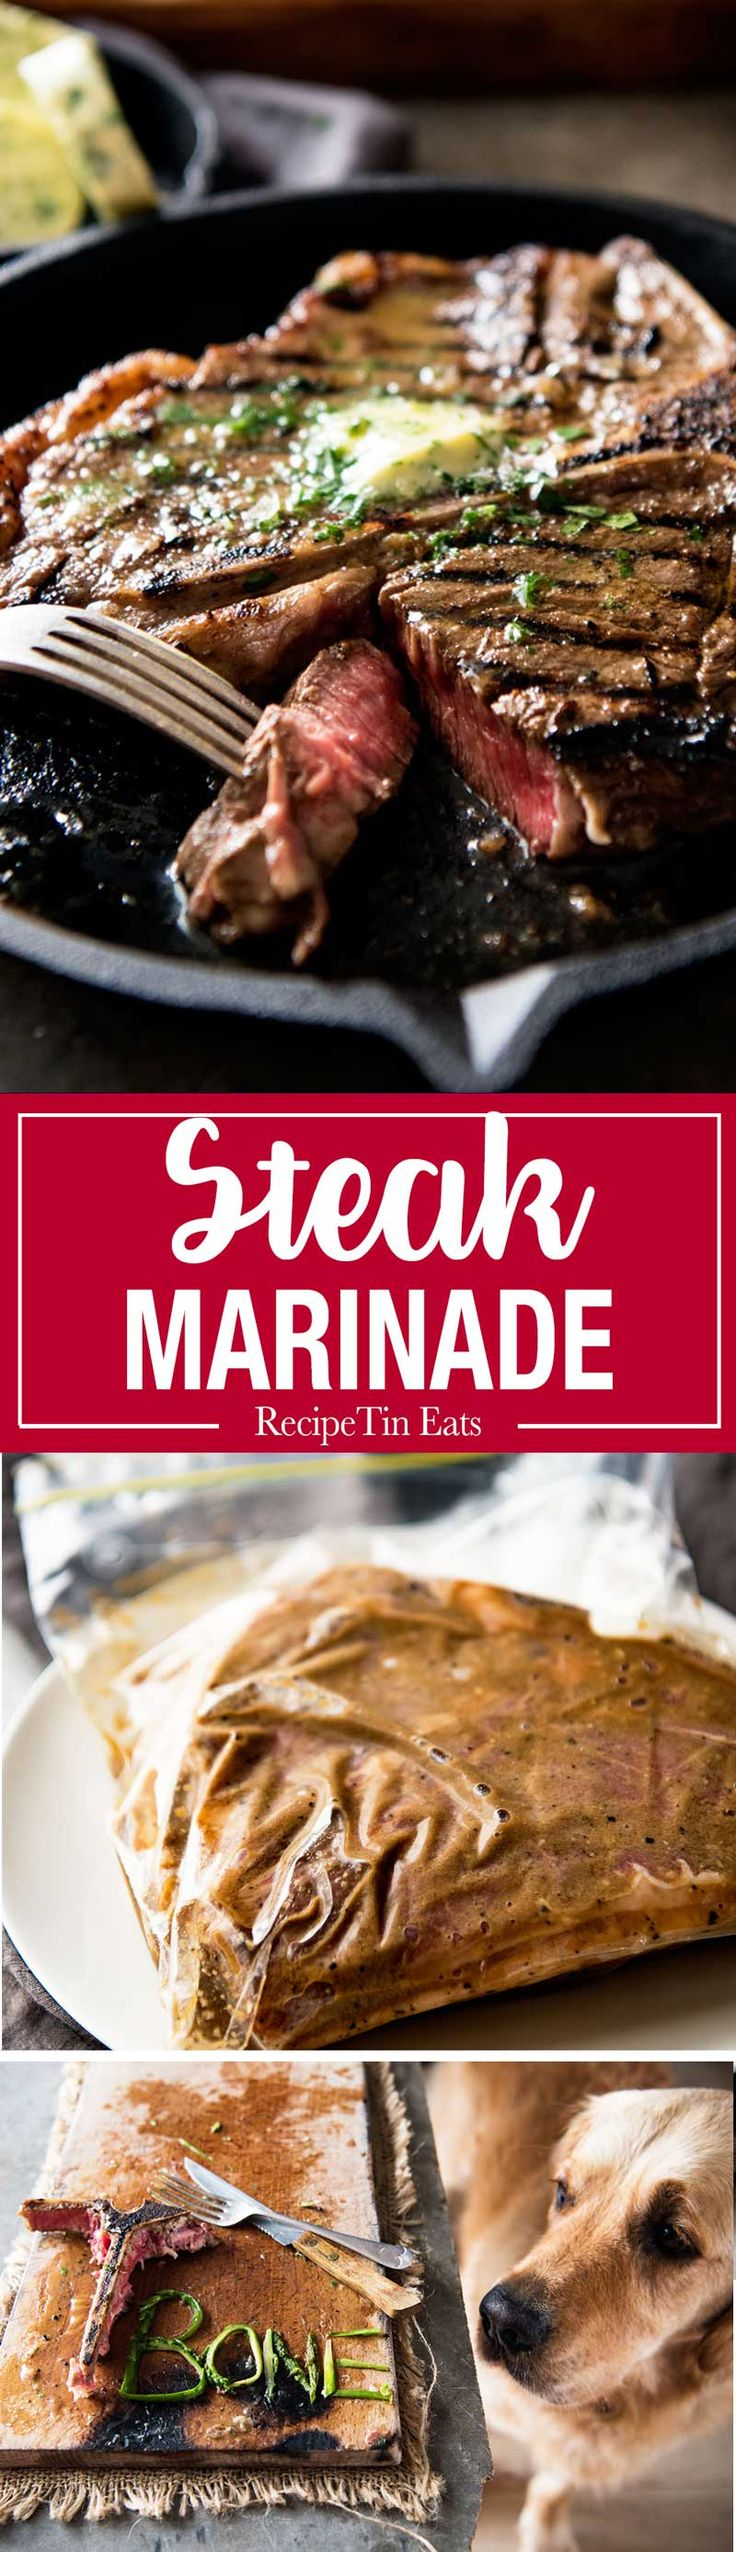 Steak Marinade - A simple, magical marinade that truly tenderises, while adding flavour AND making the steak juicy. Genius!…